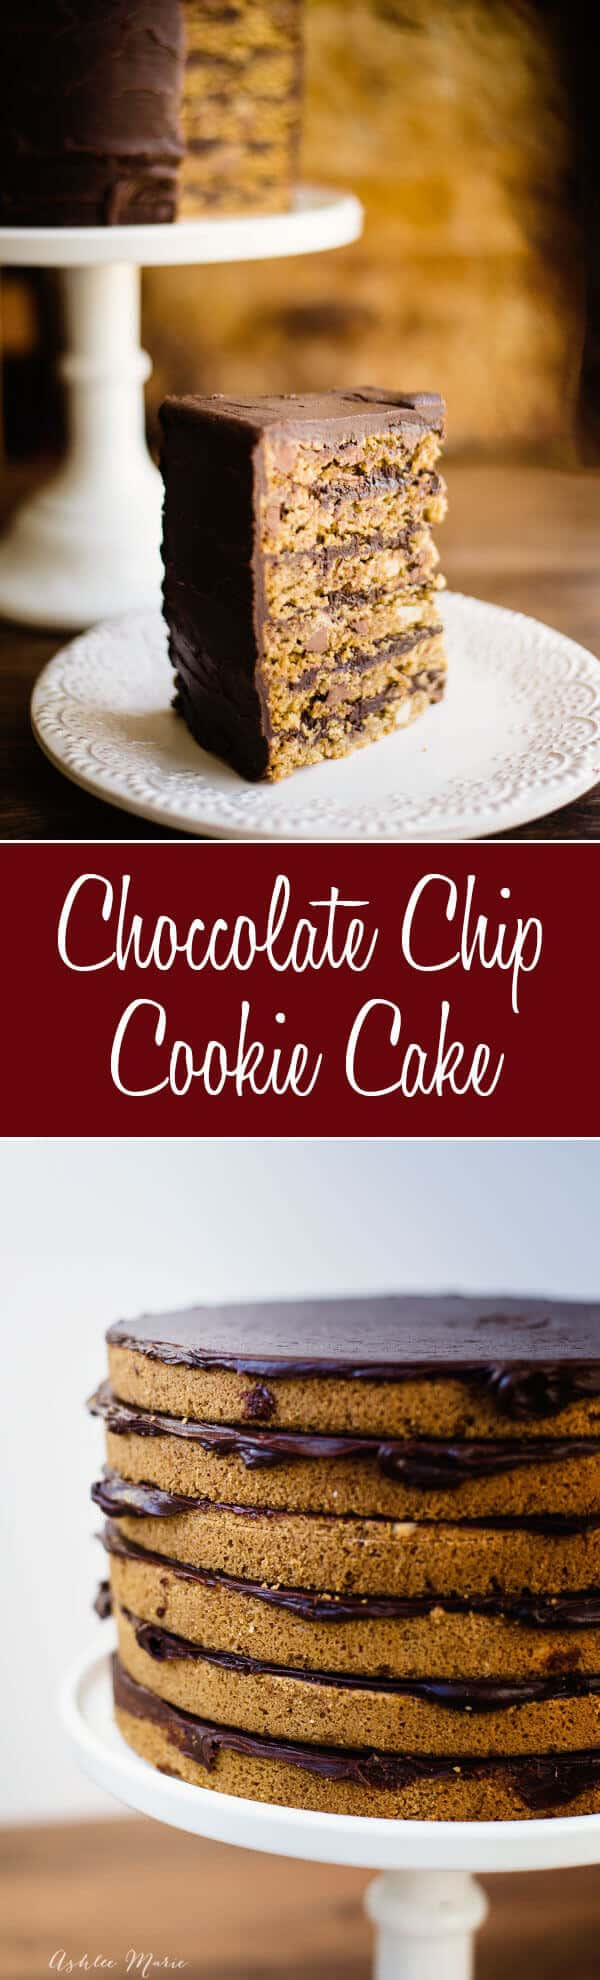 this chocolate and macadamia mut cookie cake is easy to make and oh so delicious frosted with a rich ganache it's always a huge hit